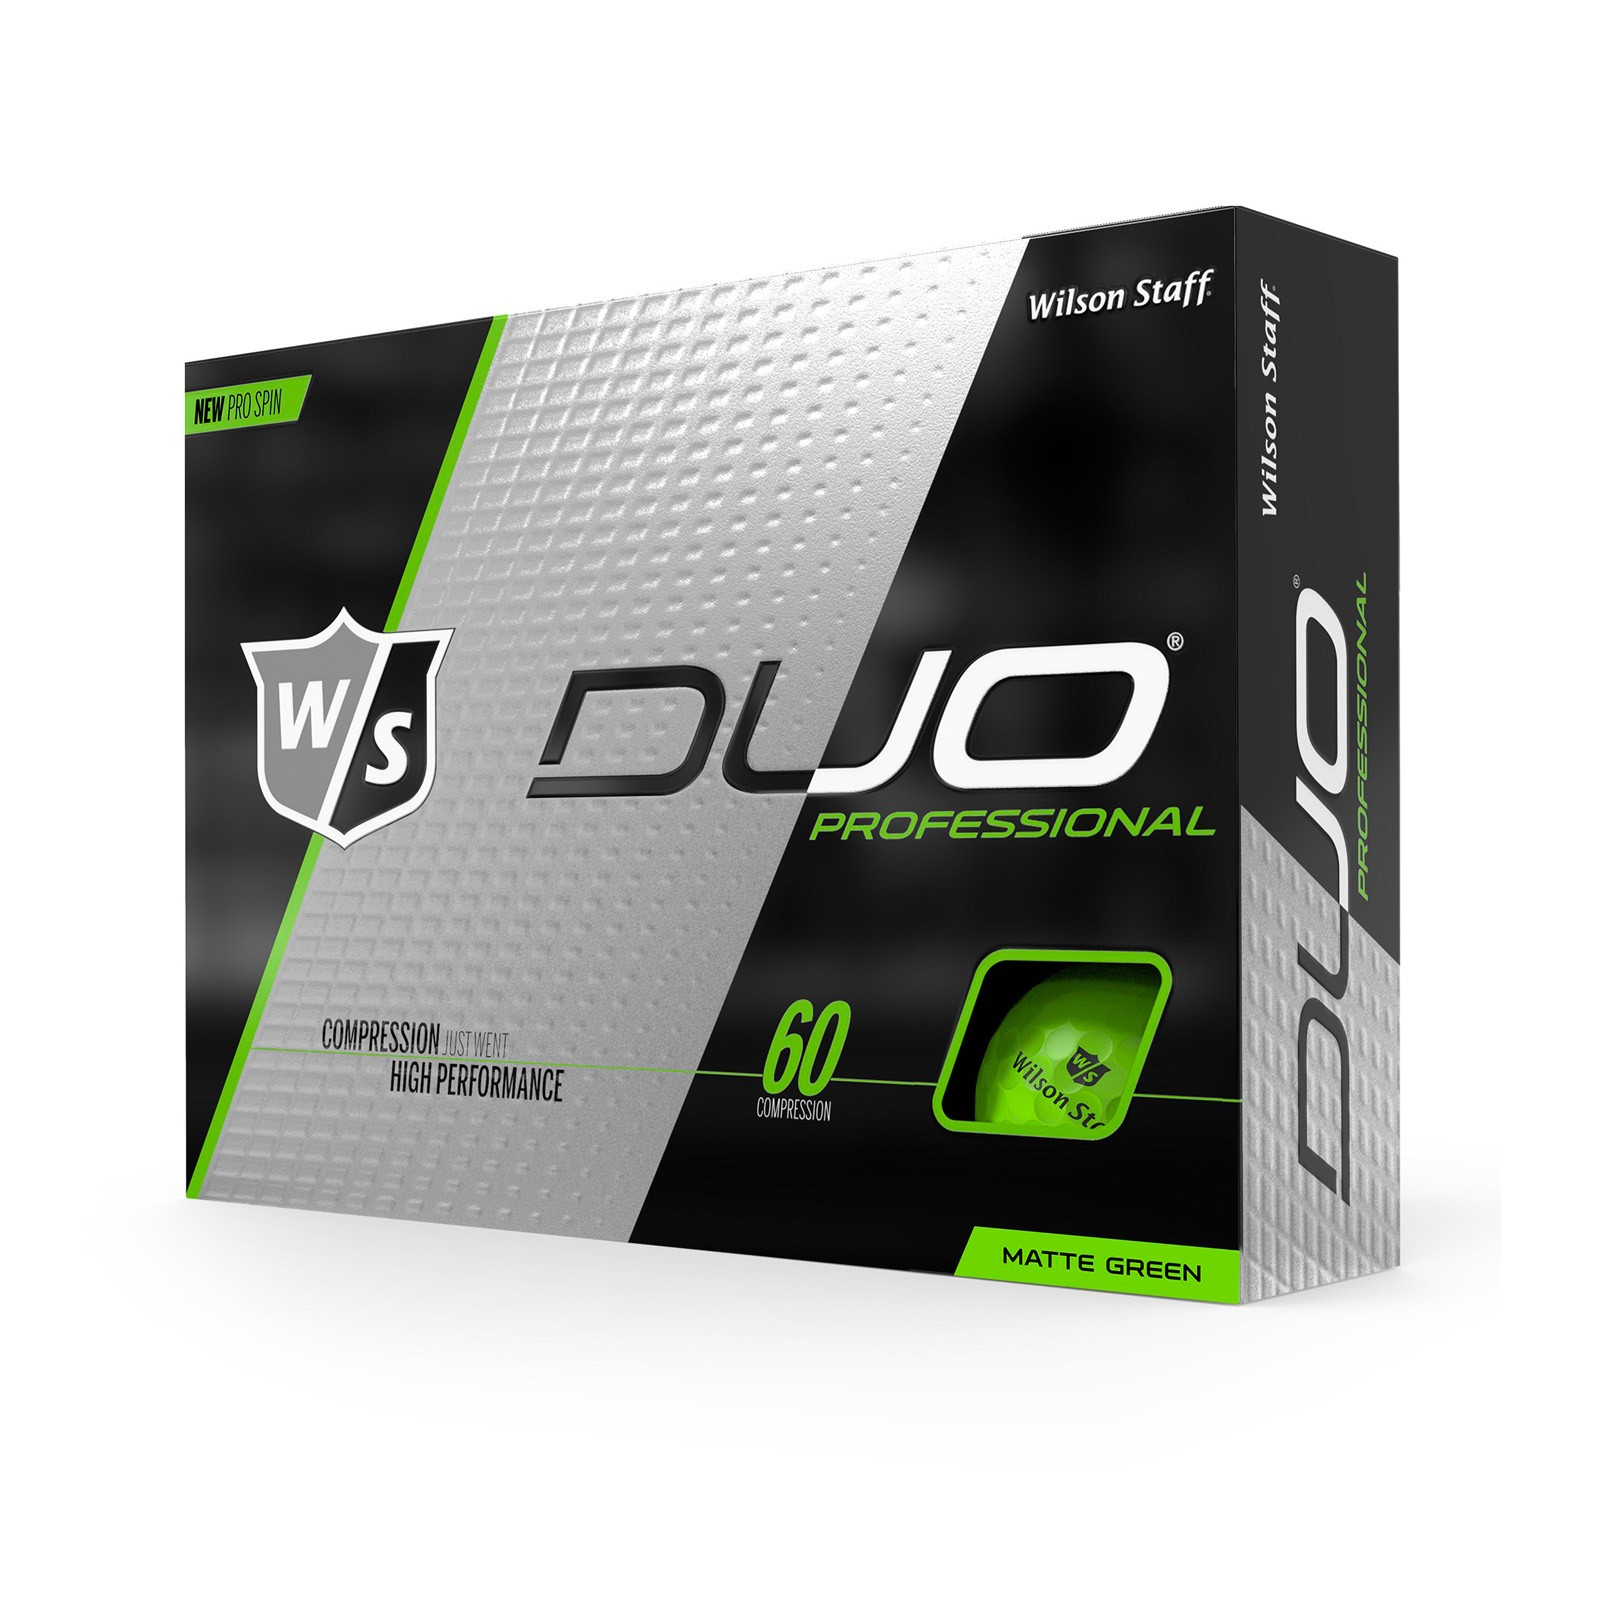 Wilson Duo Professional Golf Balls